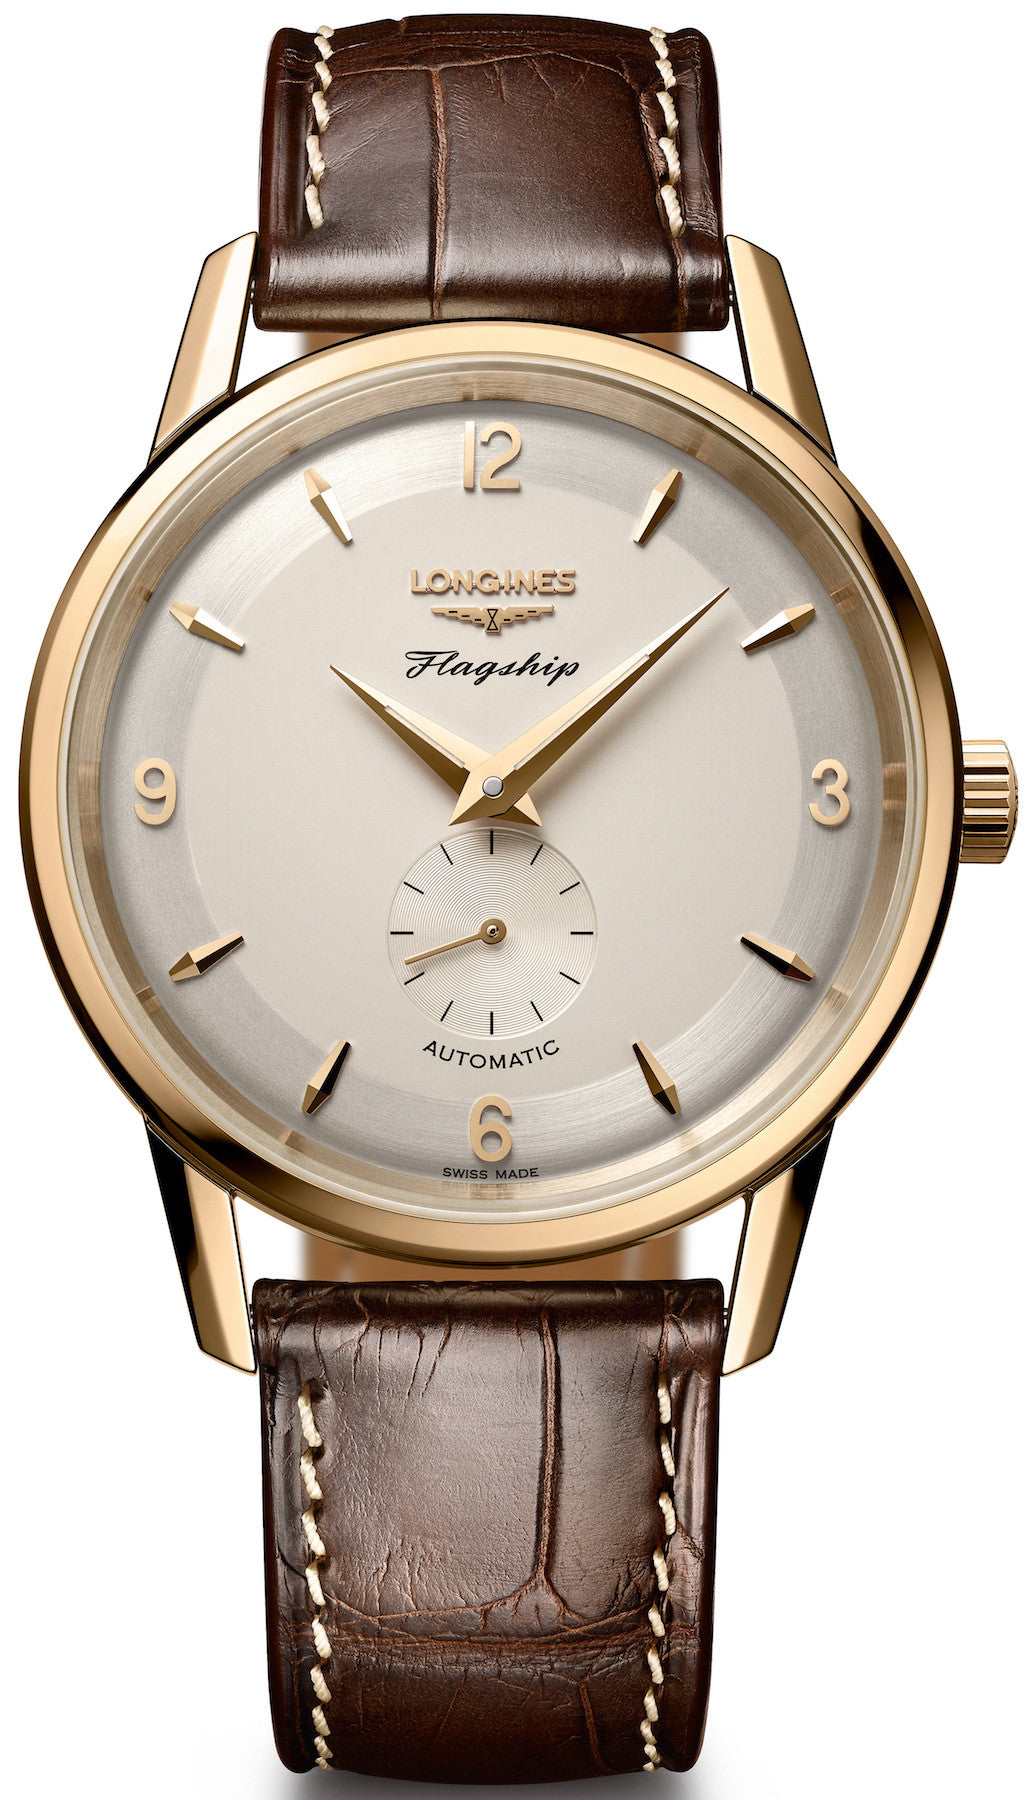 Longines Watch Flagship Heritage 60th Anniversary Limited Edition